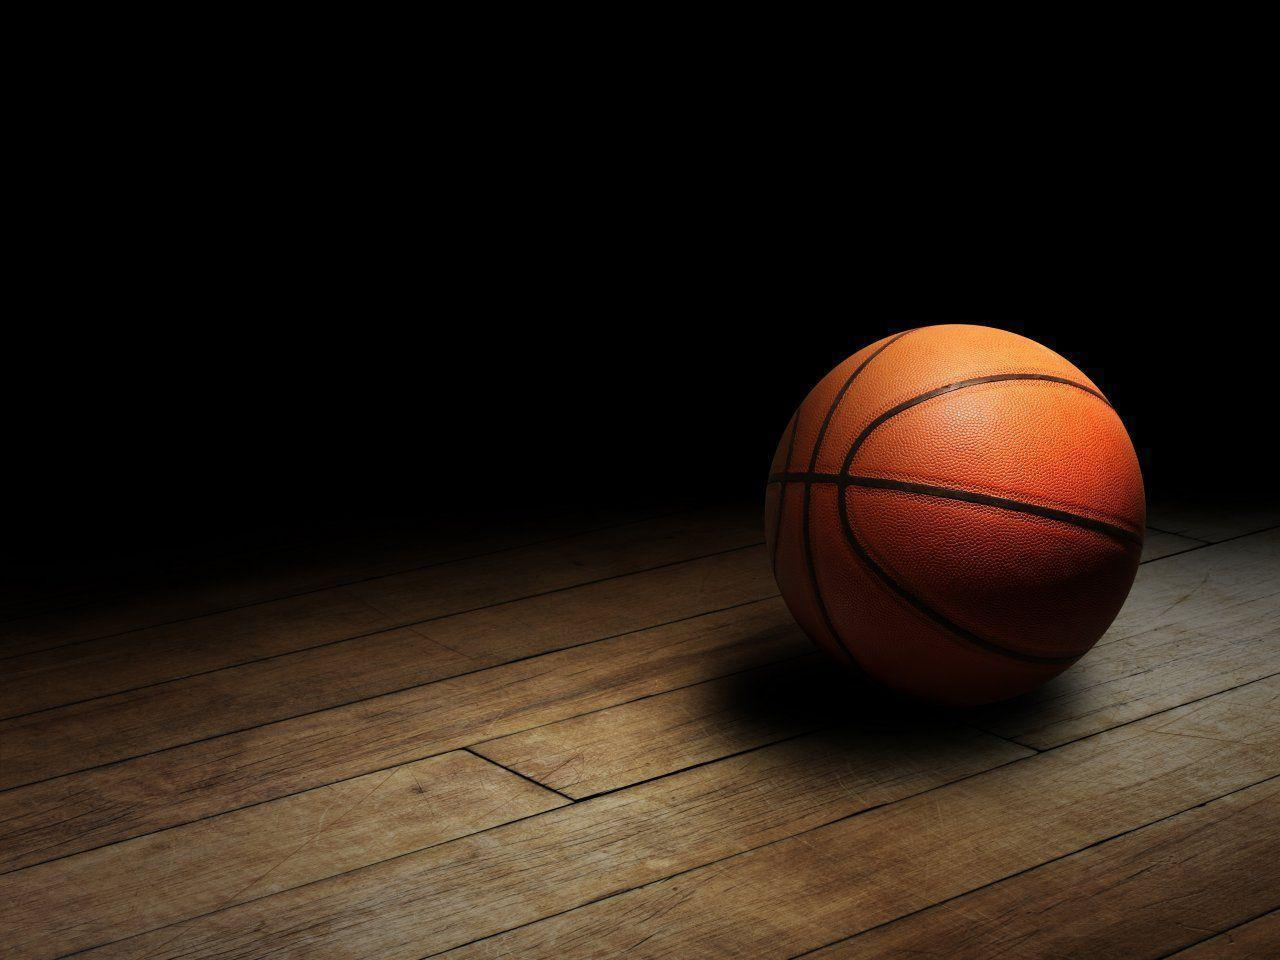 awesome basketball wallpapers unpixelated - photo #21